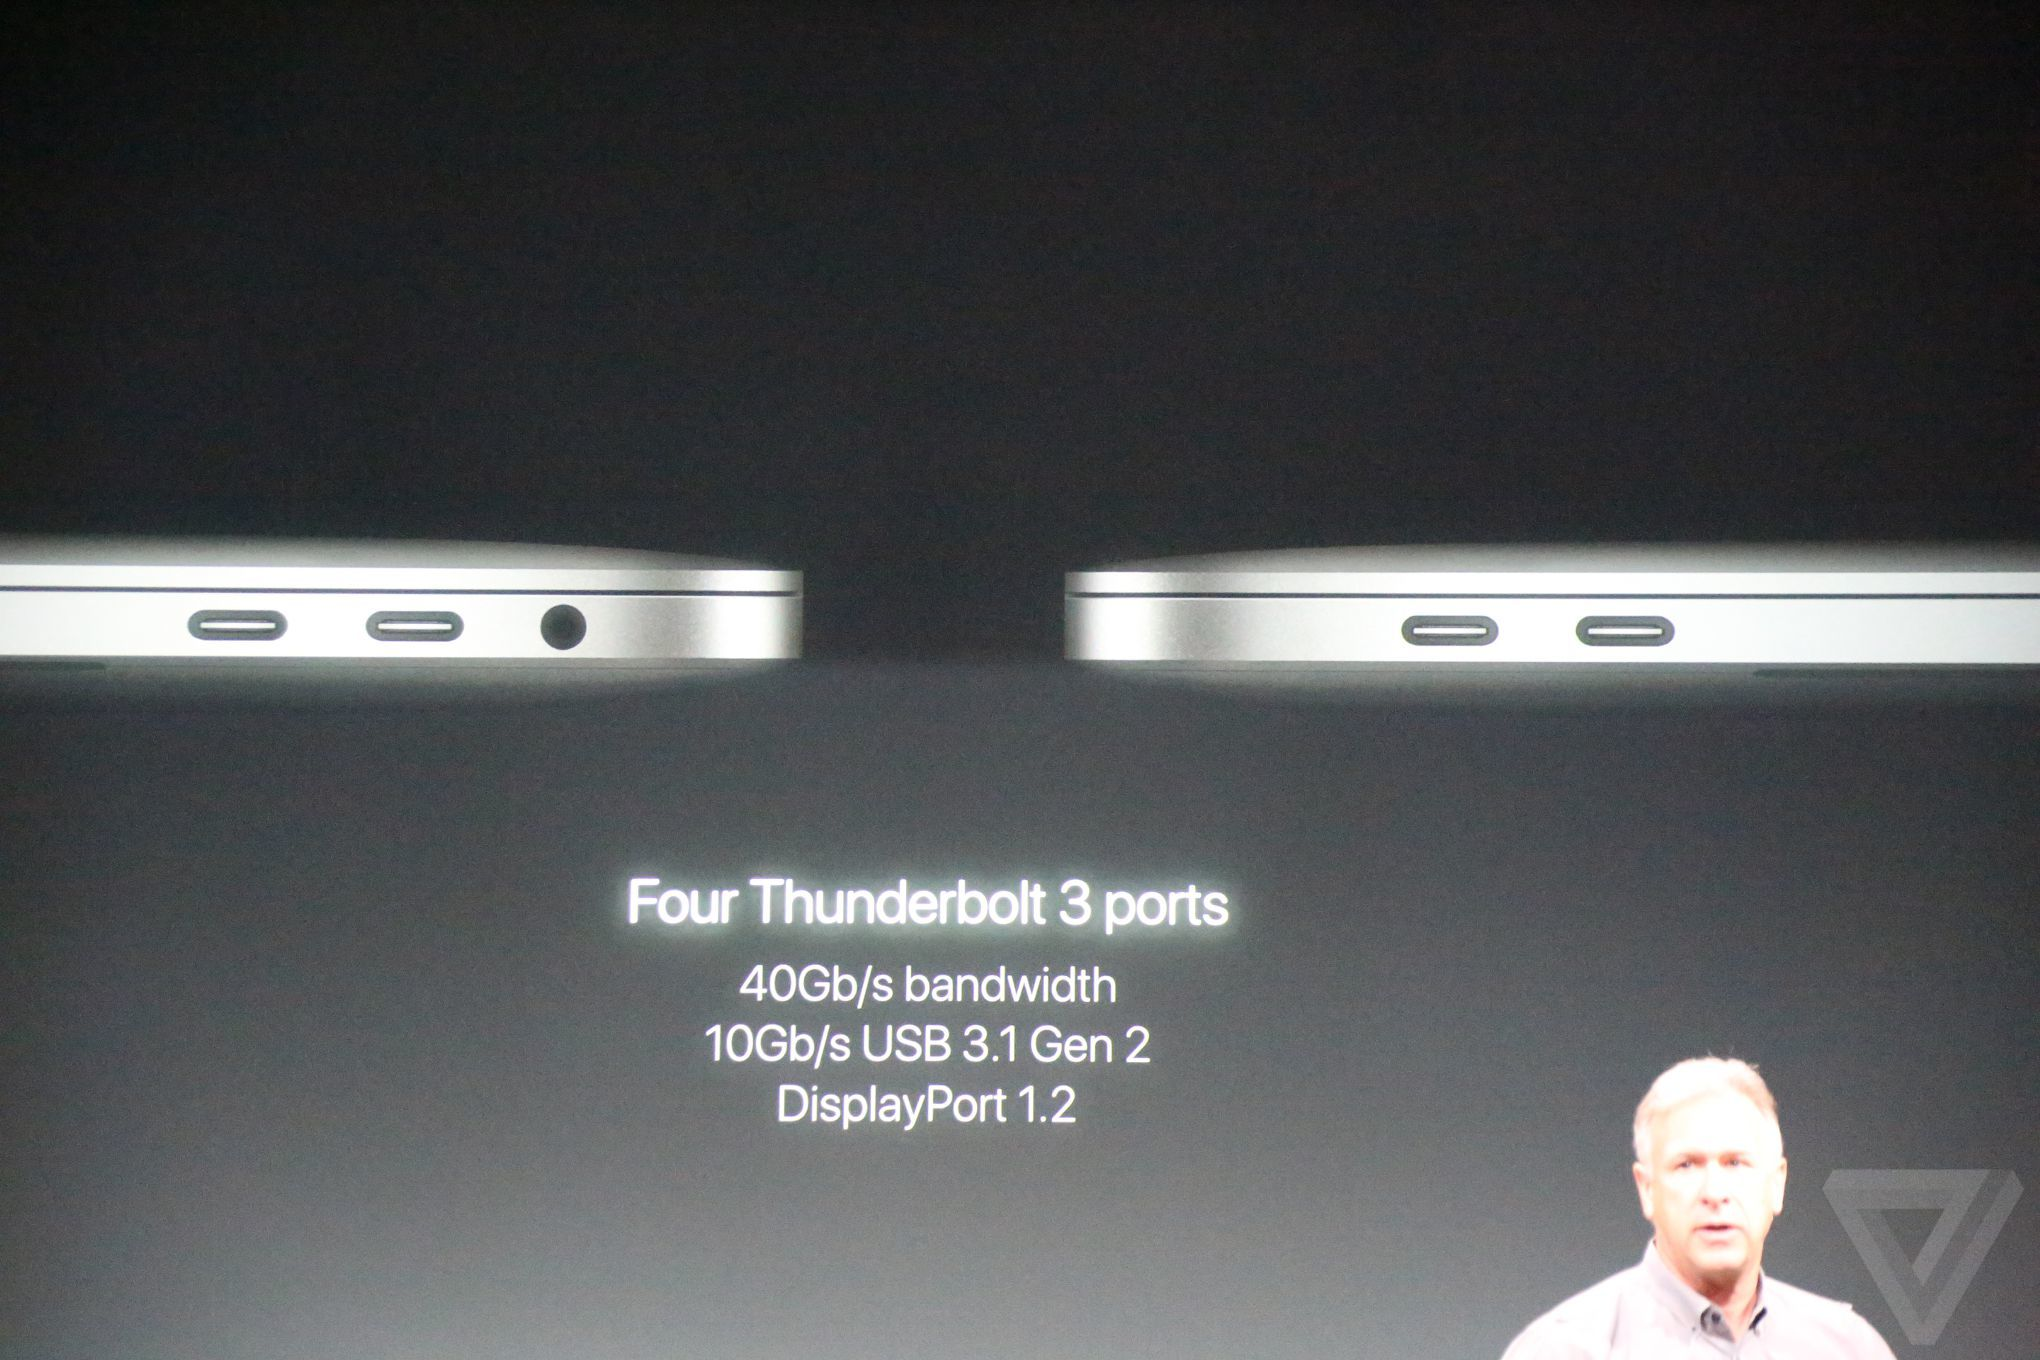 apple-macbook-event-20161027-8503